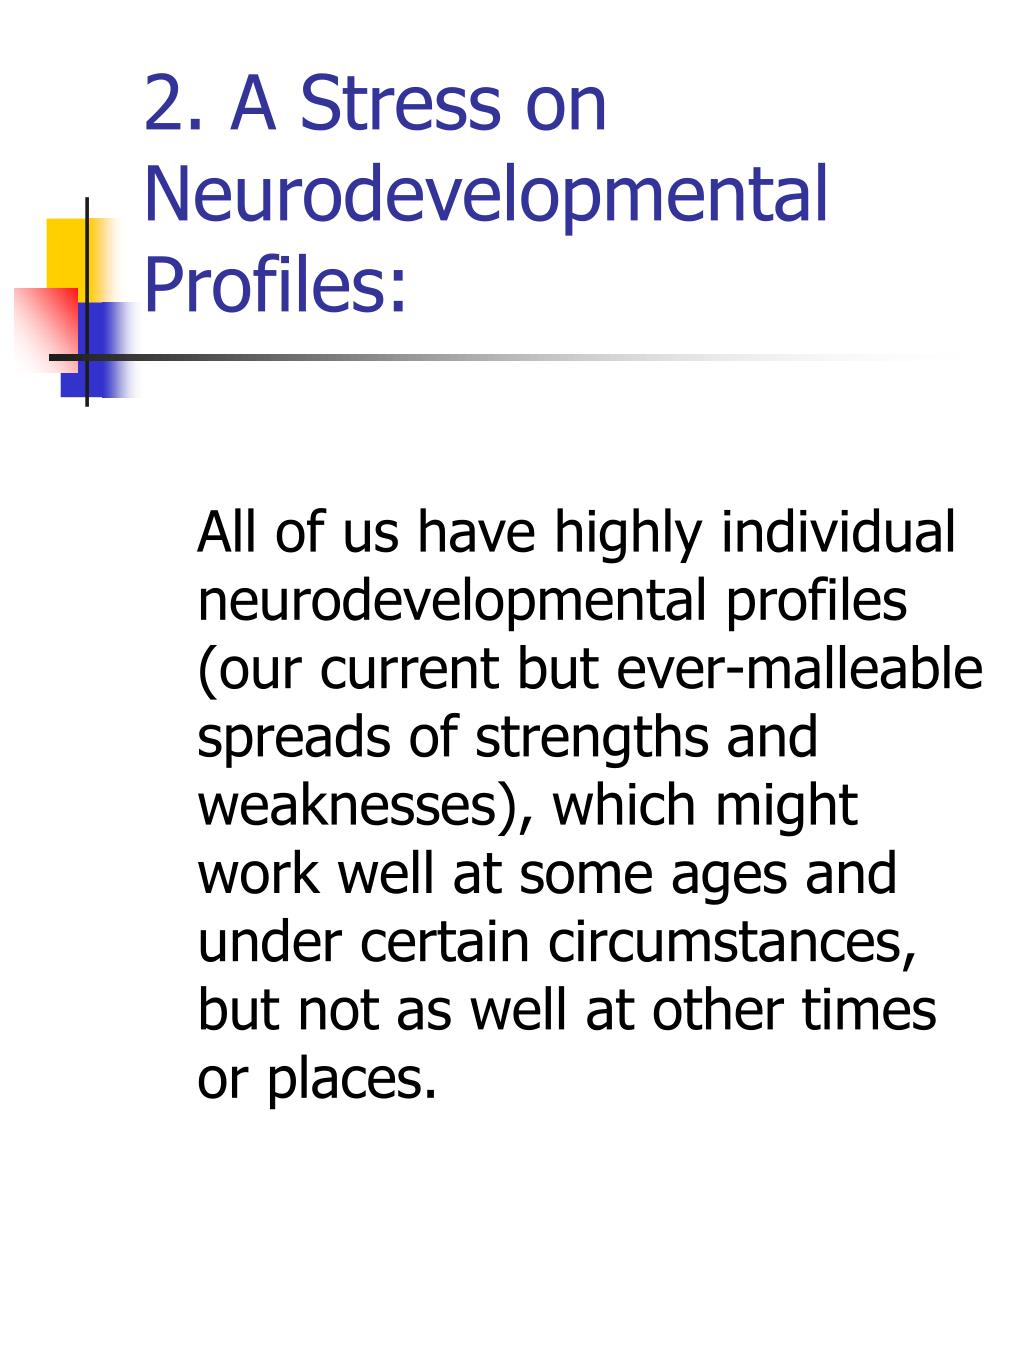 2. A Stress on Neurodevelopmental Profiles: